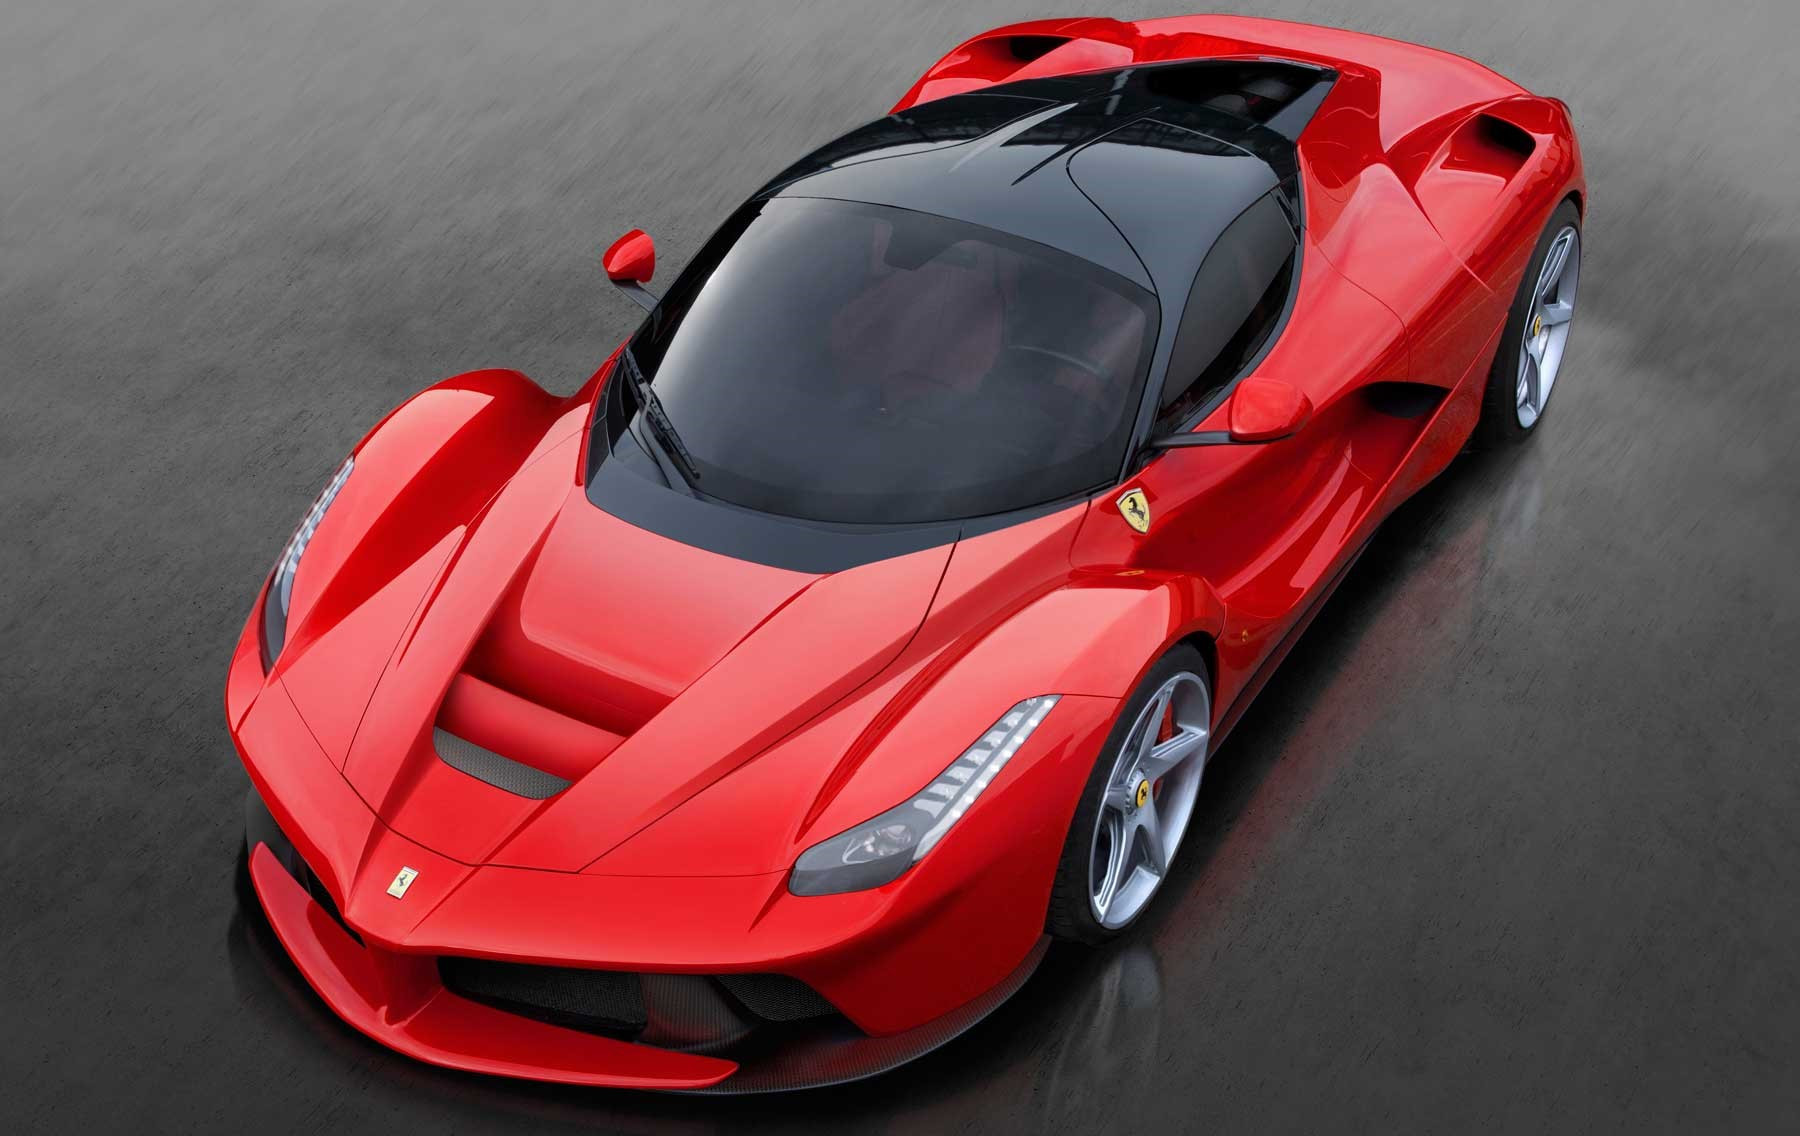 Bright red Ferrari LaFerrari shot from above